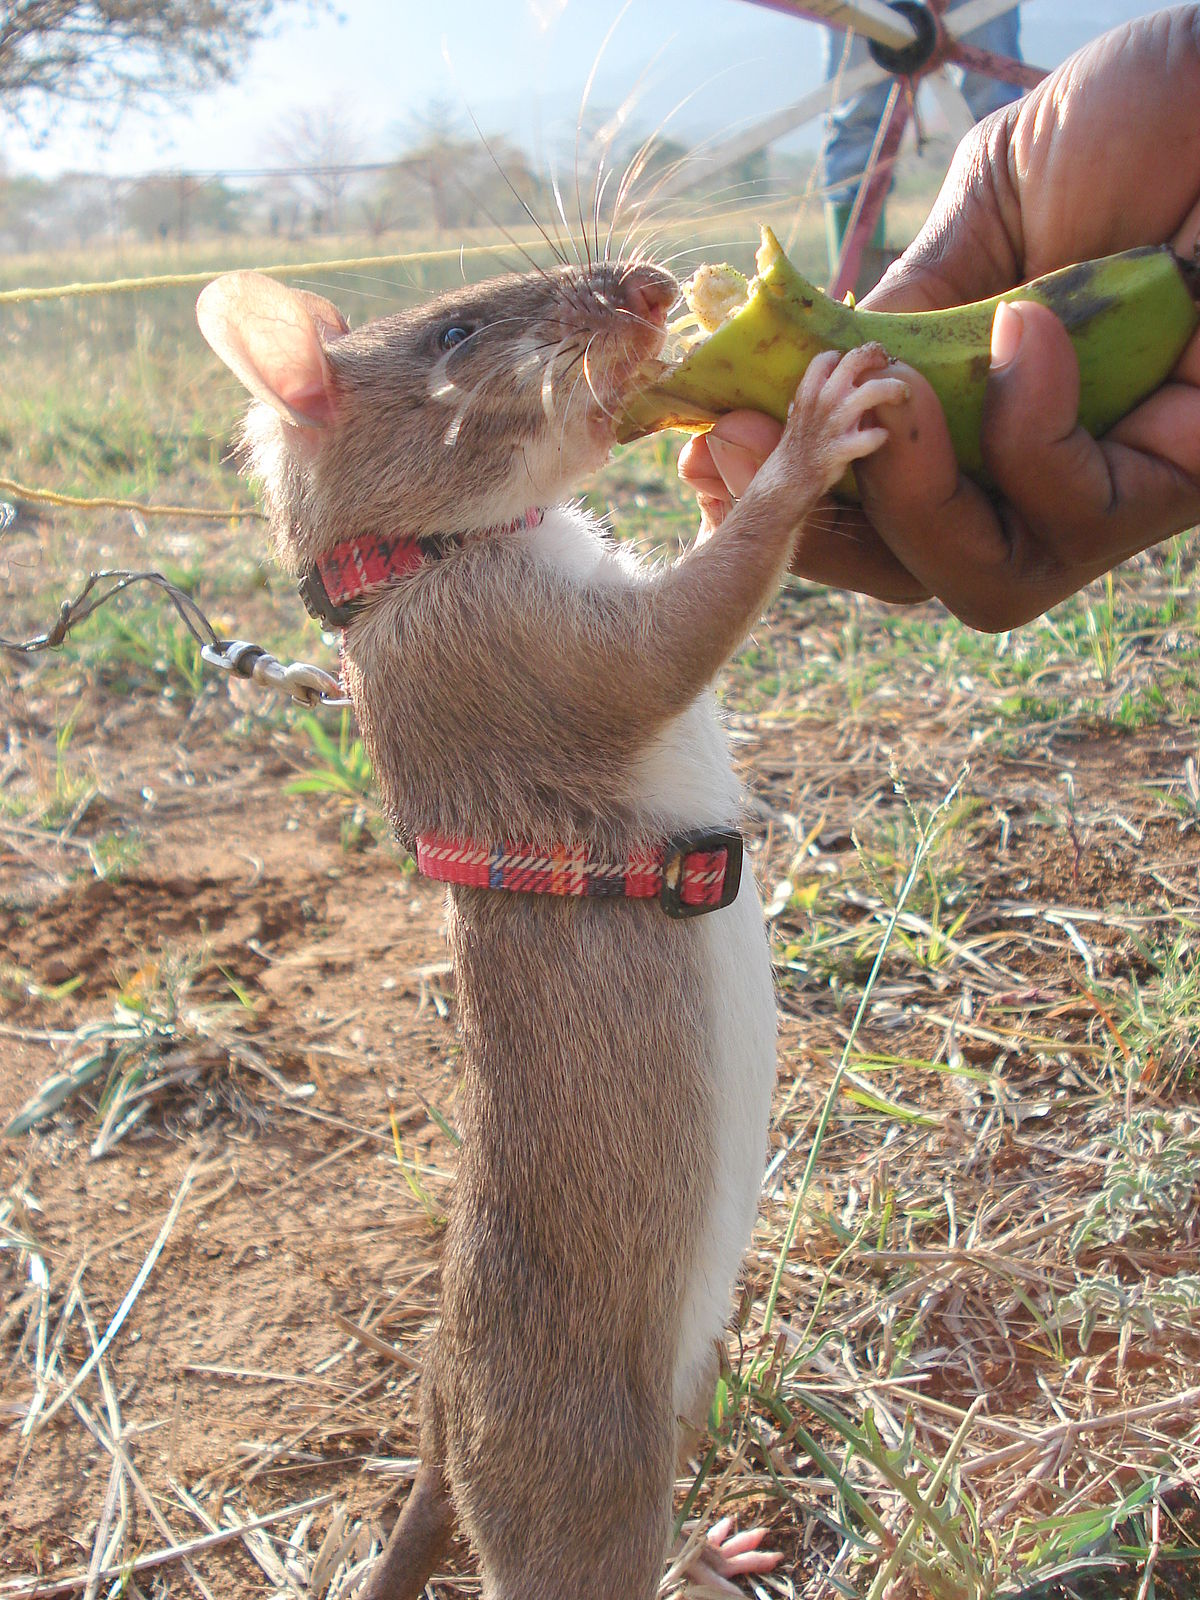 Gambian pouched rat - Wikipedia